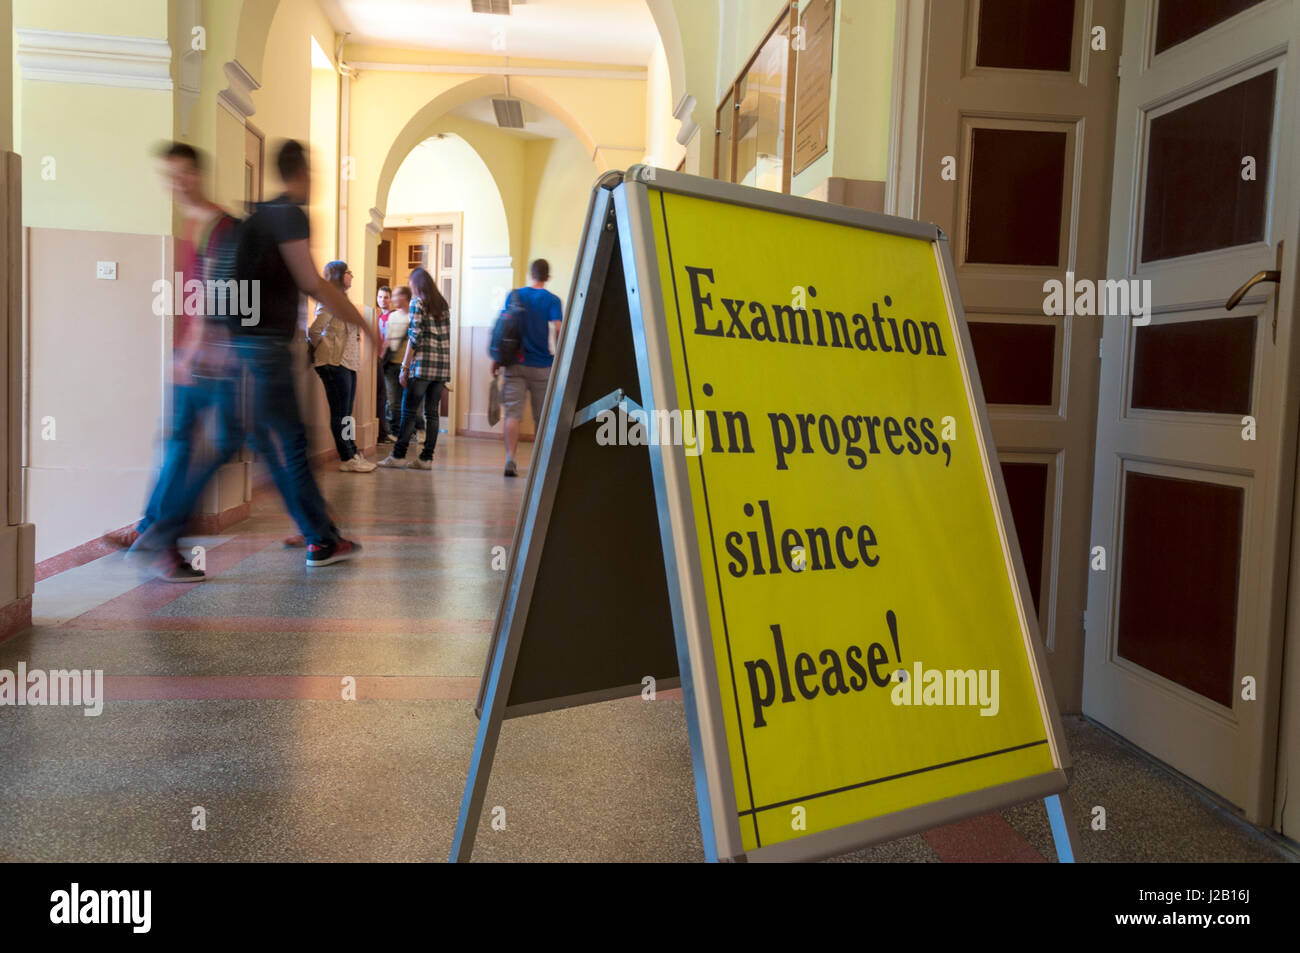 Examination in Progress Silence Please. Sign at UWC International School in Mostar, Bosnia Herzegovina. - Stock Image